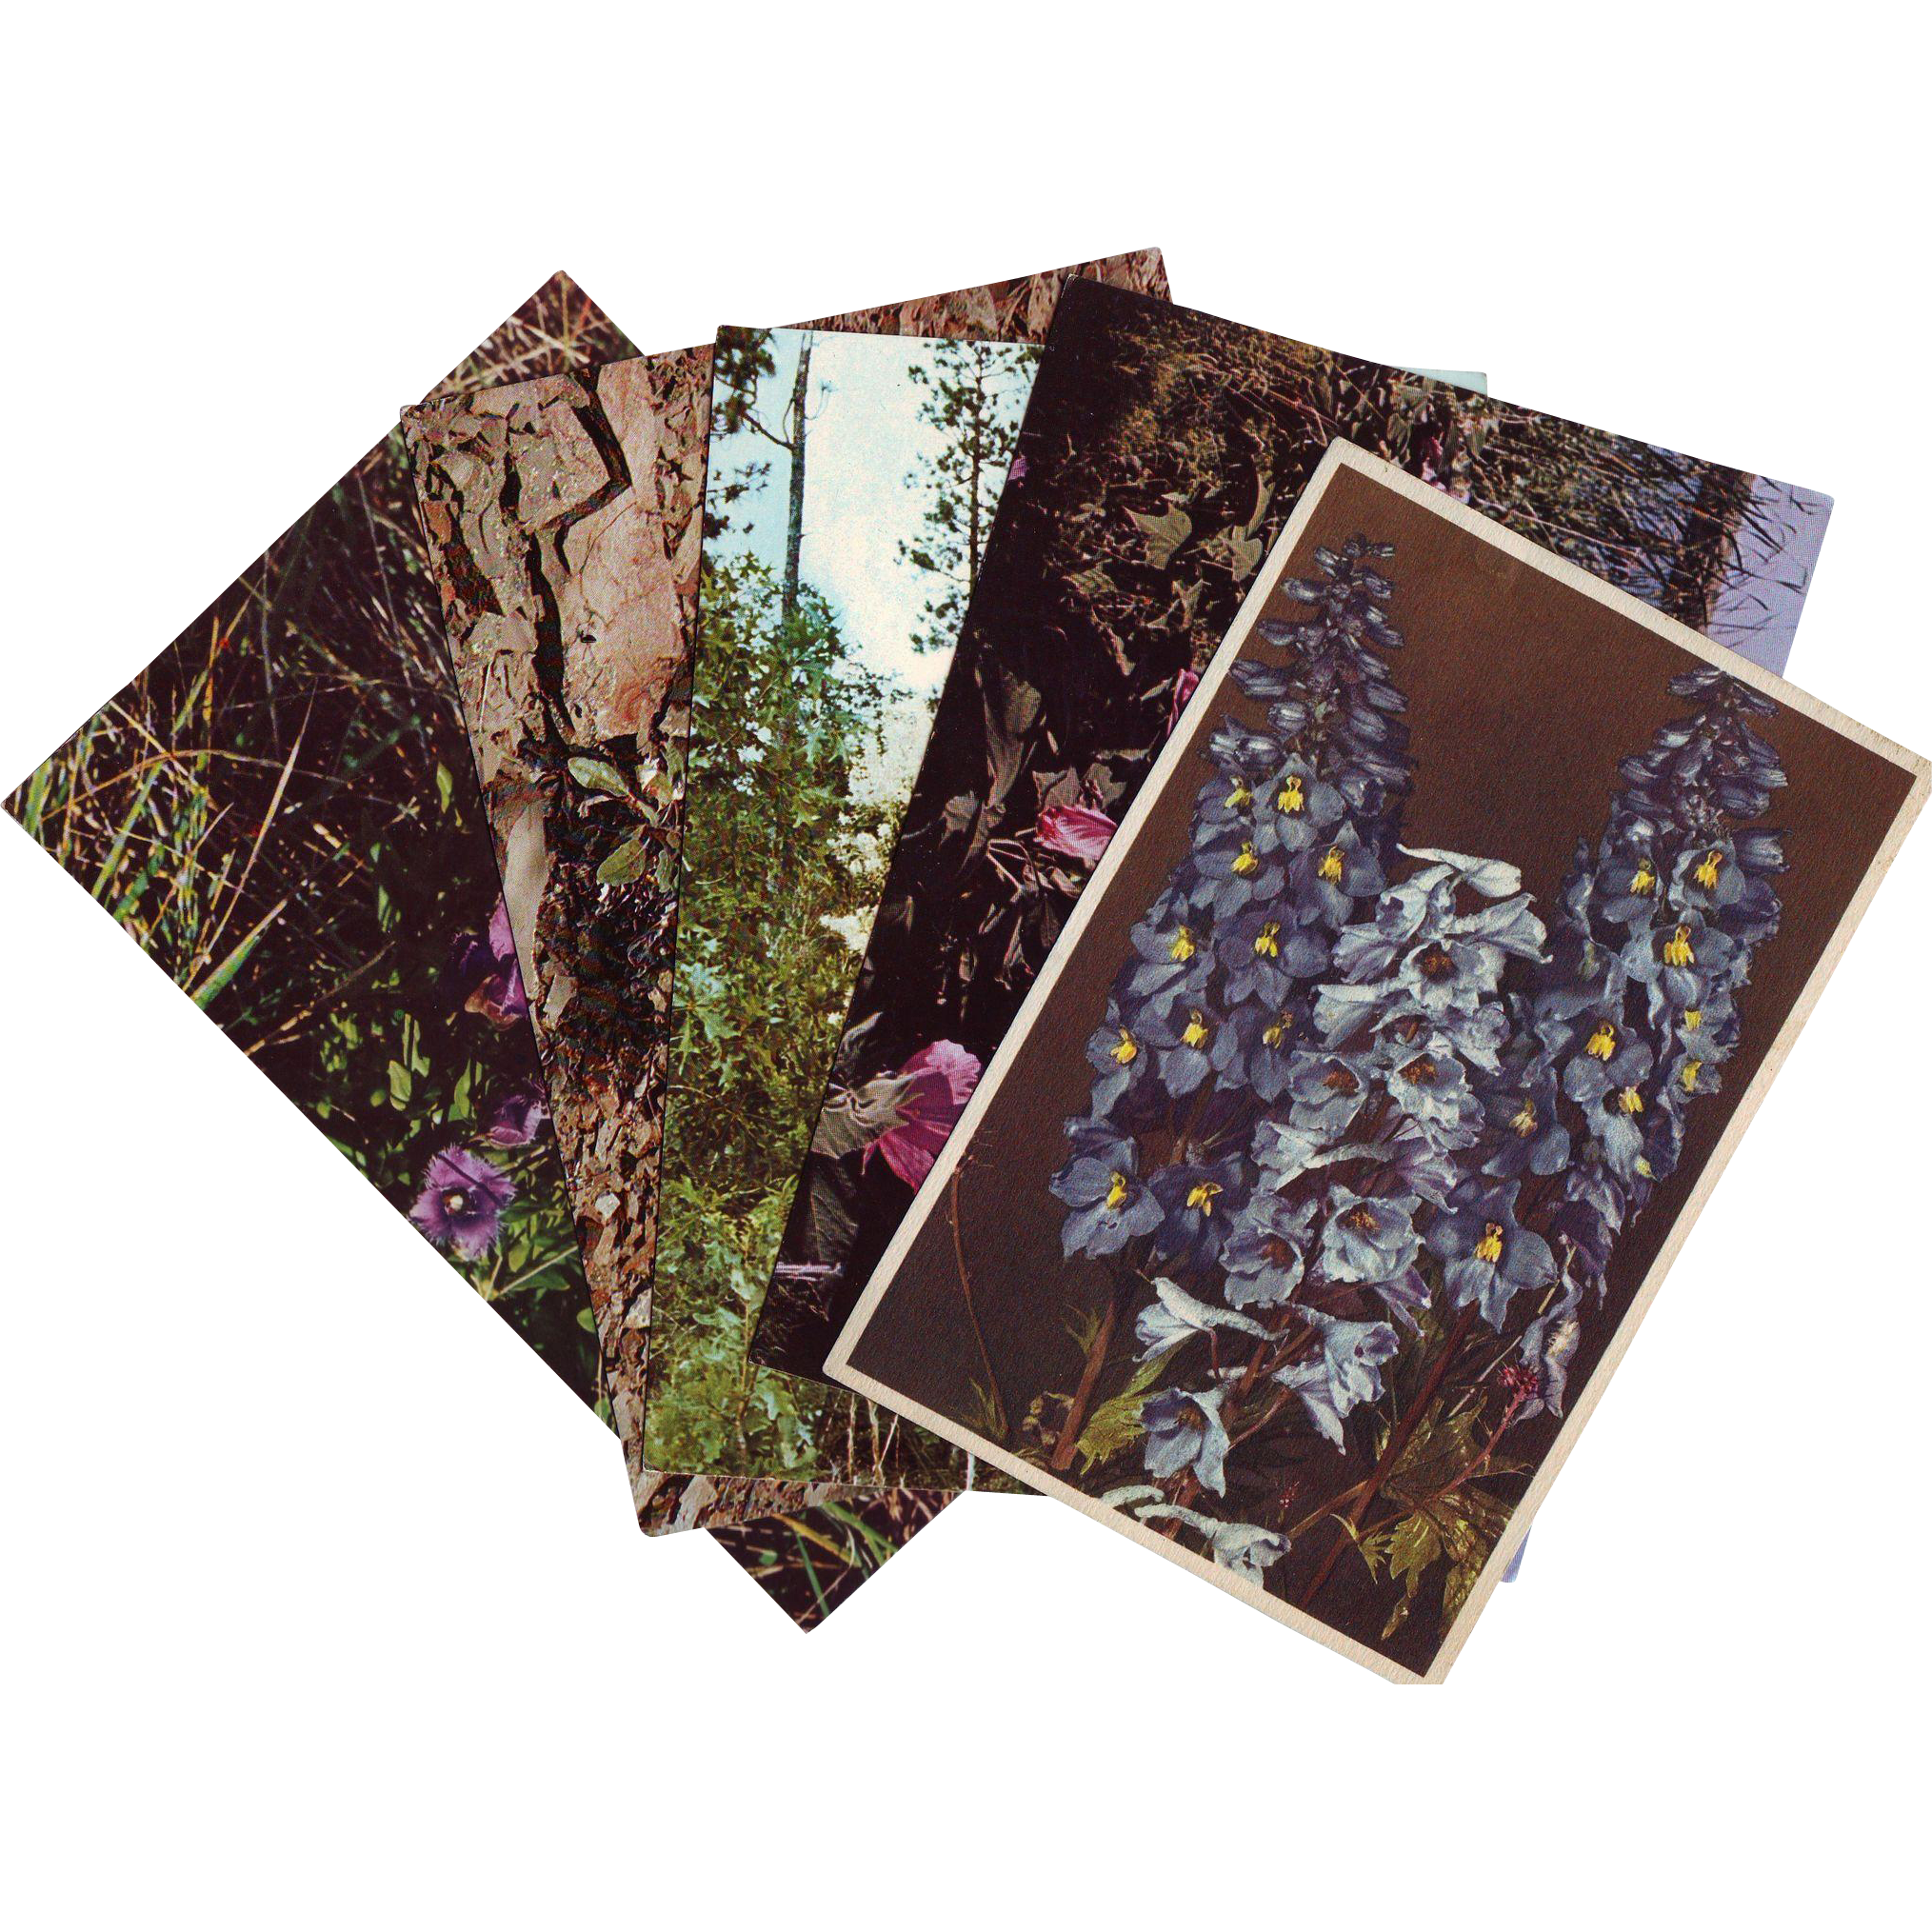 Six Vintage Real Photo RPPC Postcards of Wildflowers - Unused